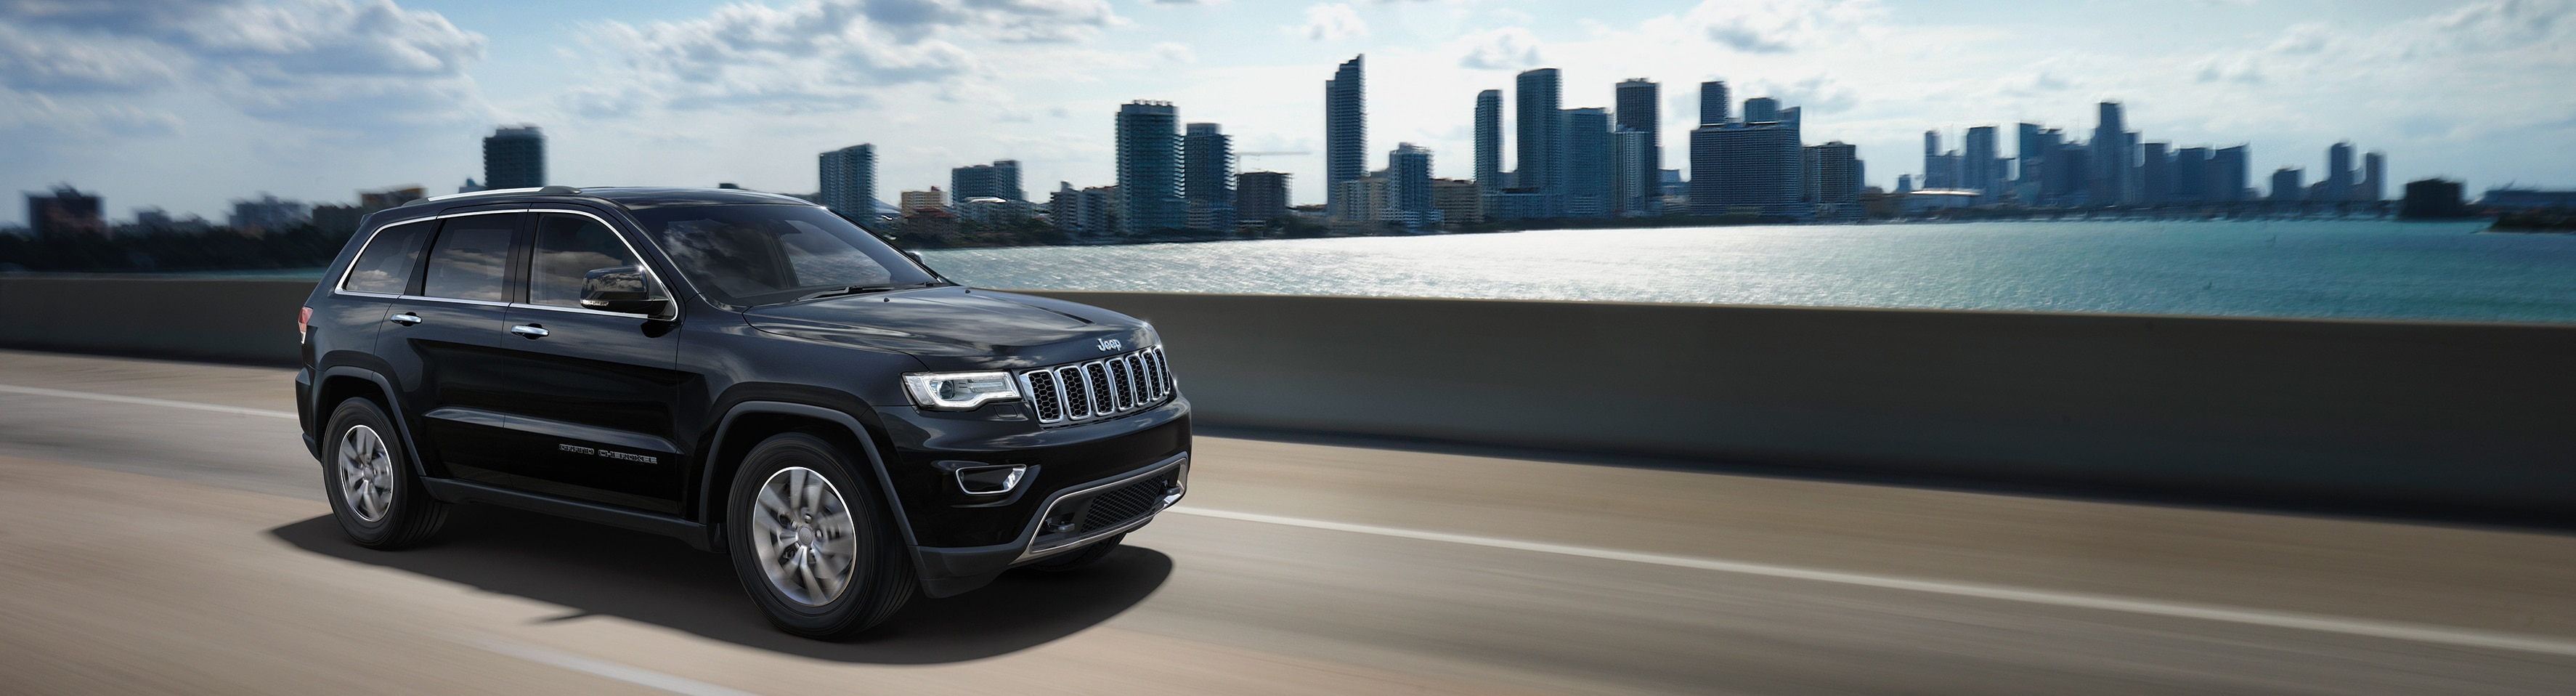 Used Jeep Grand Cherokee SUV For Sale in Long Island